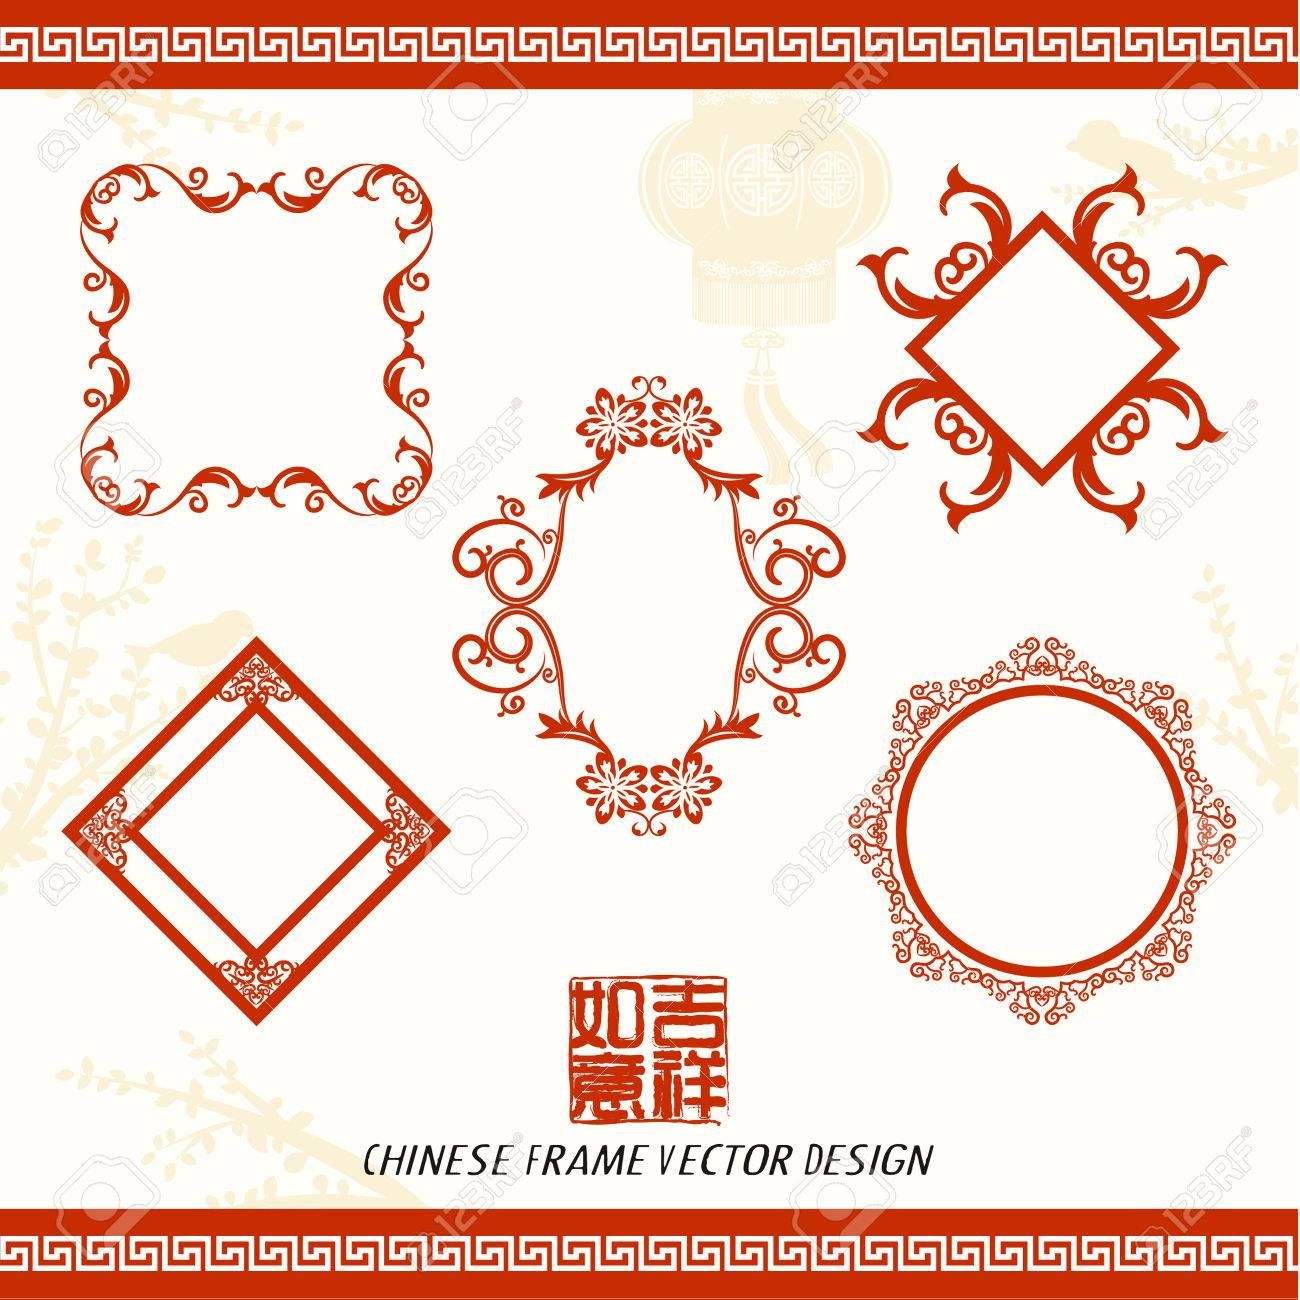 Oriental Chinese New Year Frame Vector Design Royalty Free Cliparts ...